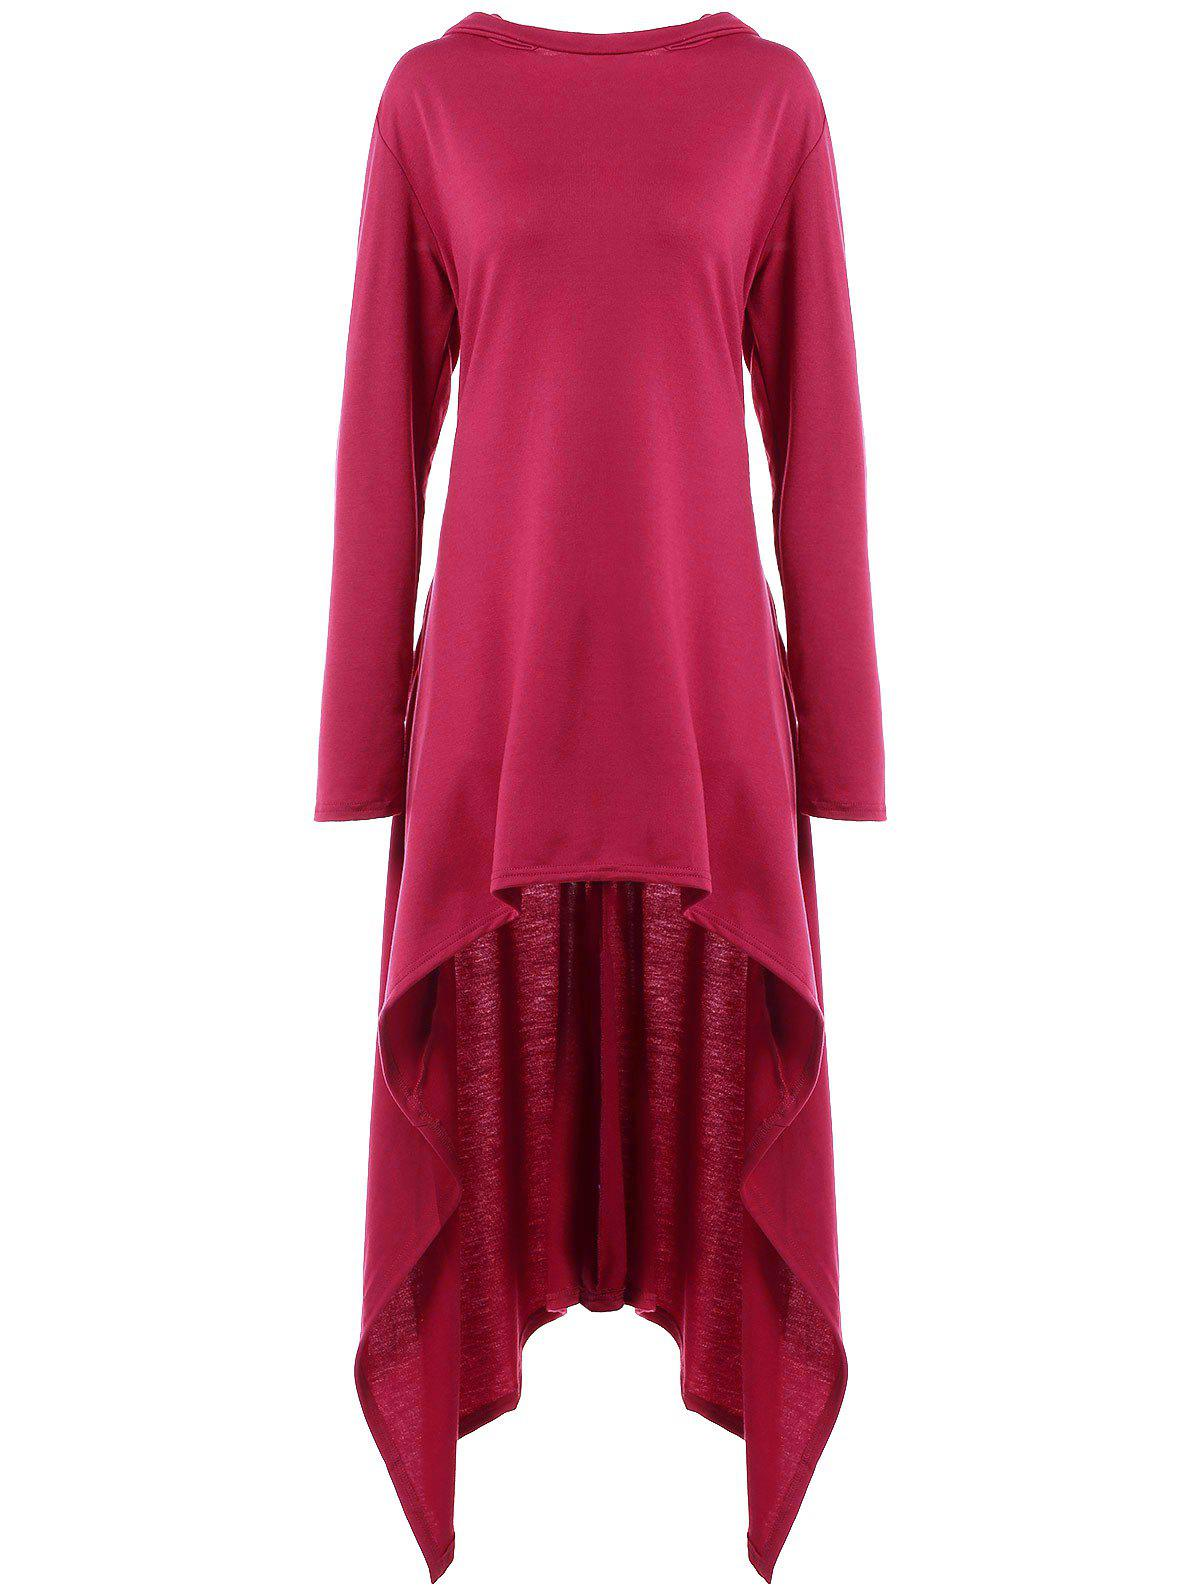 High Low Hooded Dress with Long Sleeves - RED VIOLET M